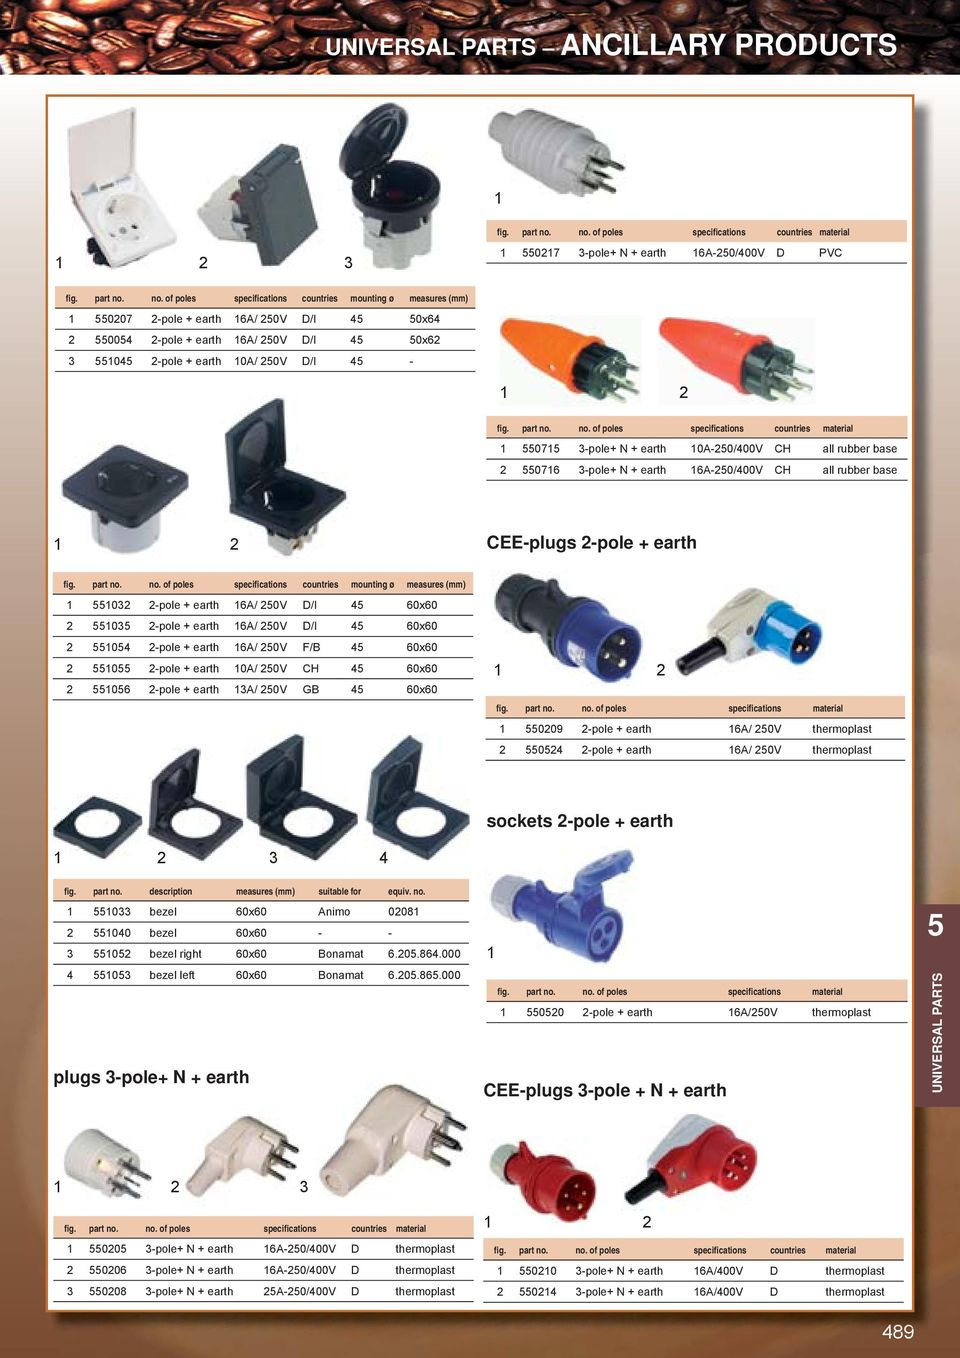 all rubber base 076 -pole+ N + earth 6A-0/400V CH all rubber base CEE-plugs -pole + earth fig. part no.